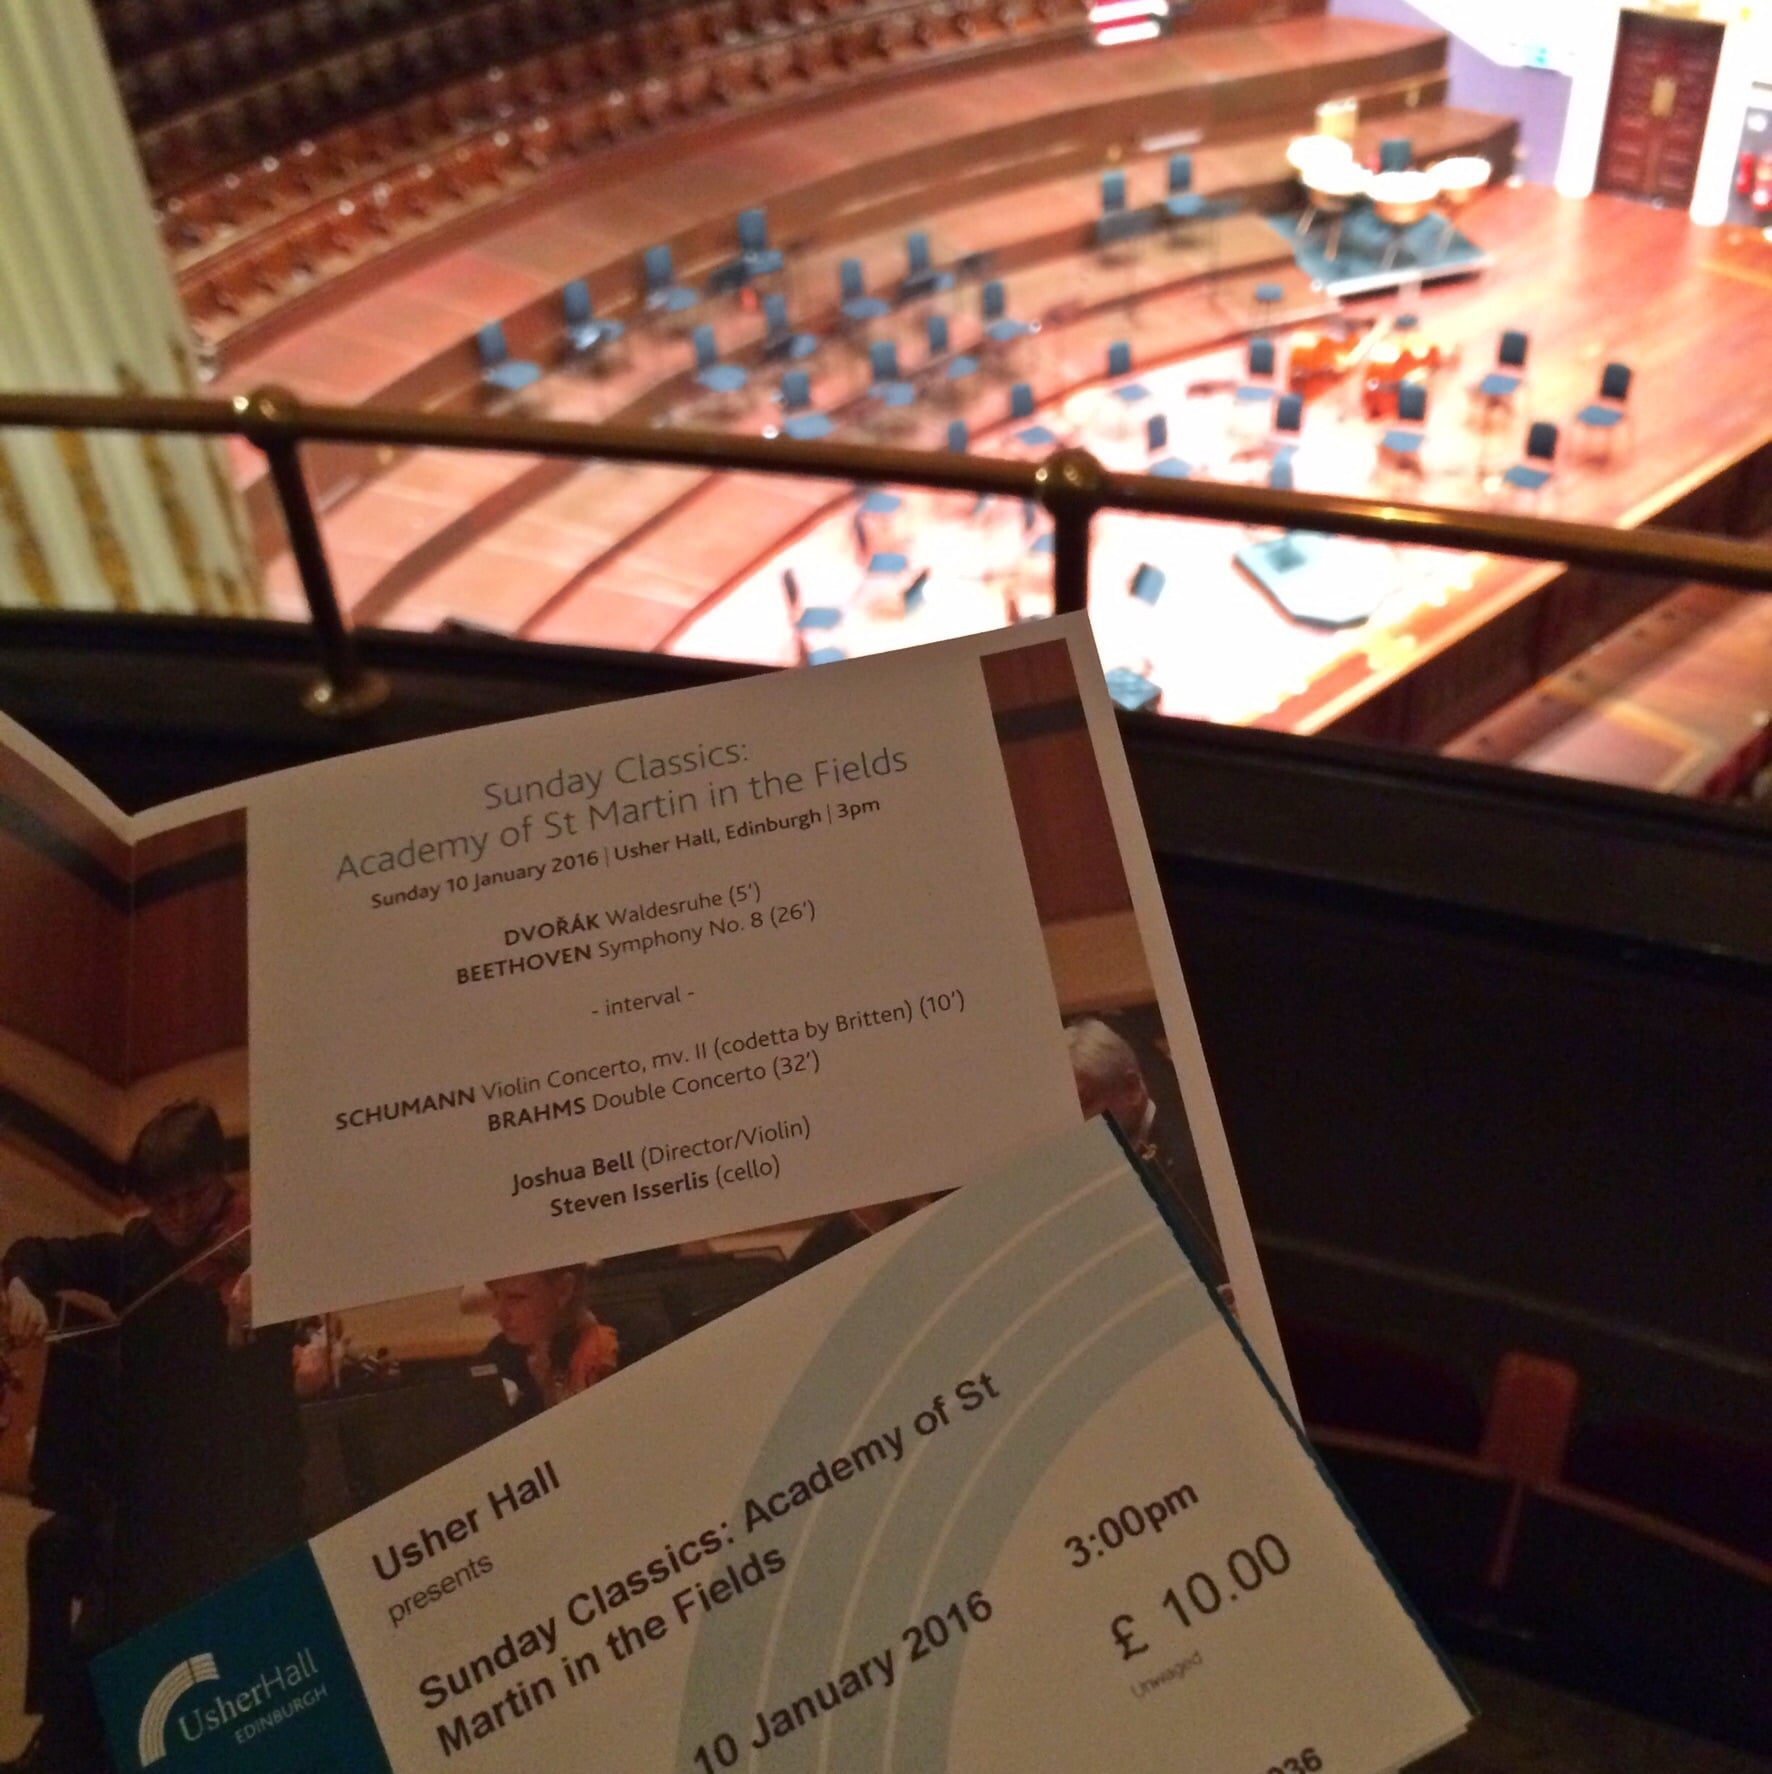 My ticket and program from the performance this afternoon.